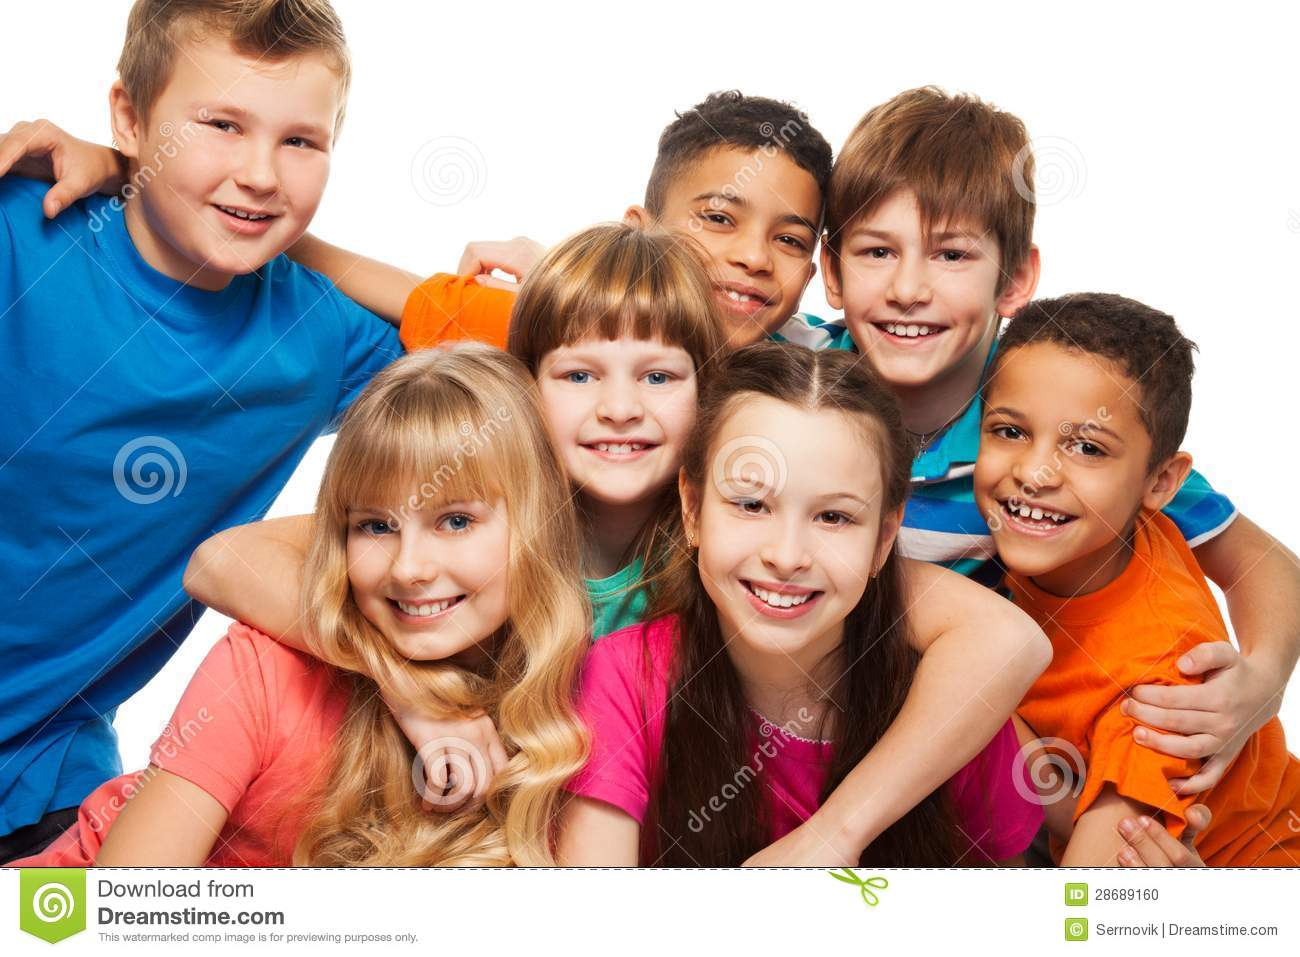 Lump of happy kids stock photo. Image of friends, cute ...